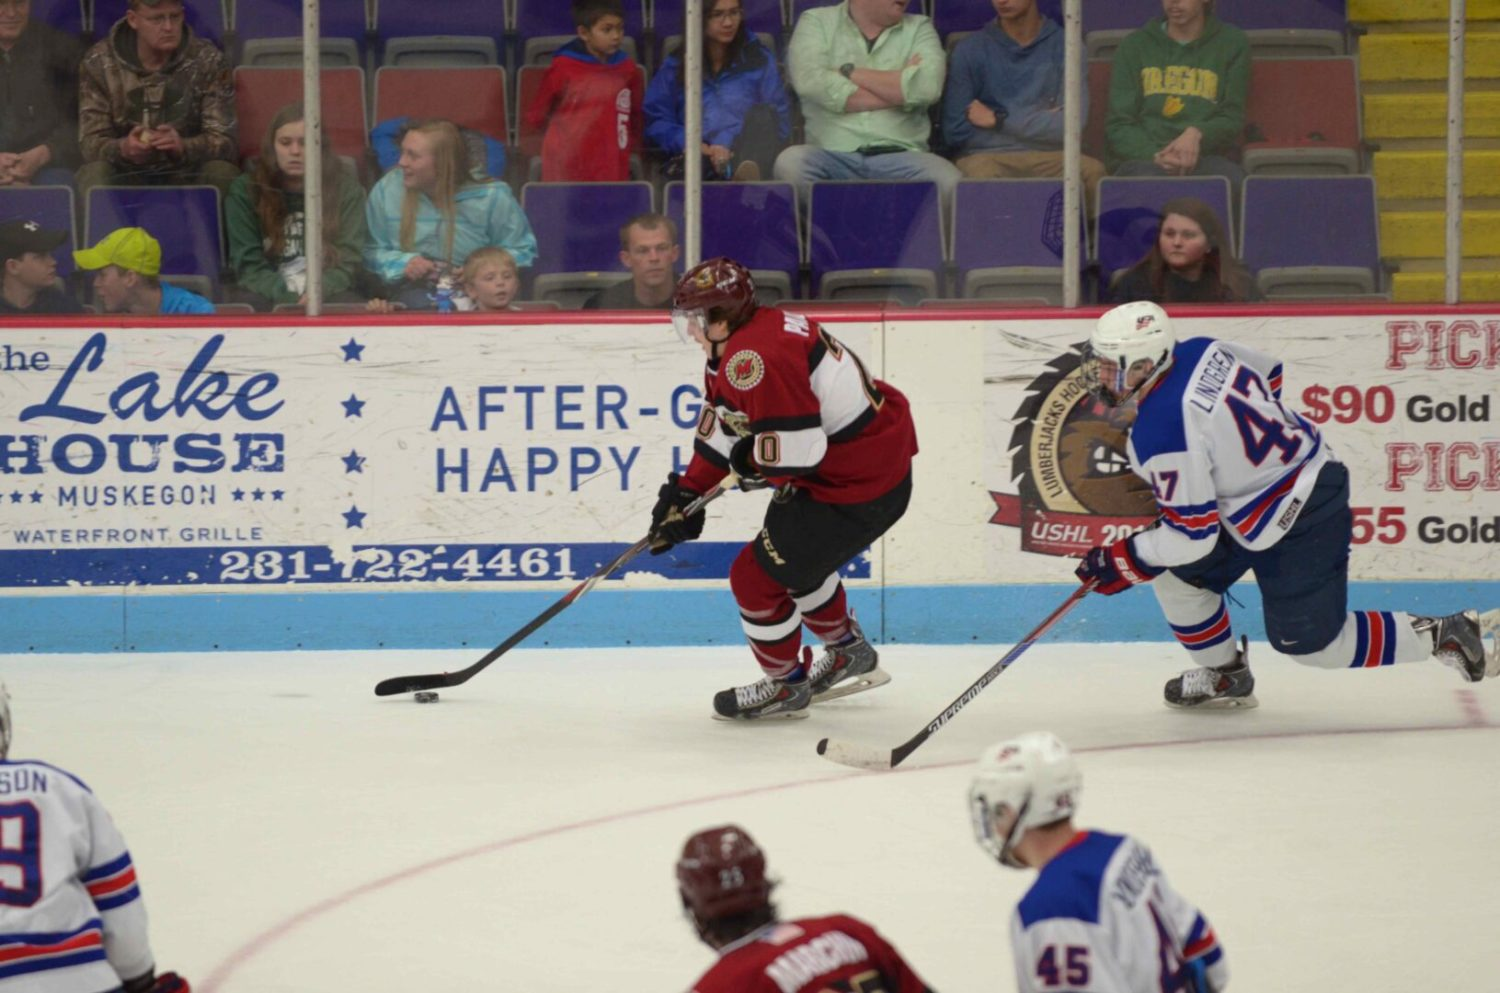 Lumberjacks' winning streak ends at five games with a listless 4-0 loss to Team USA